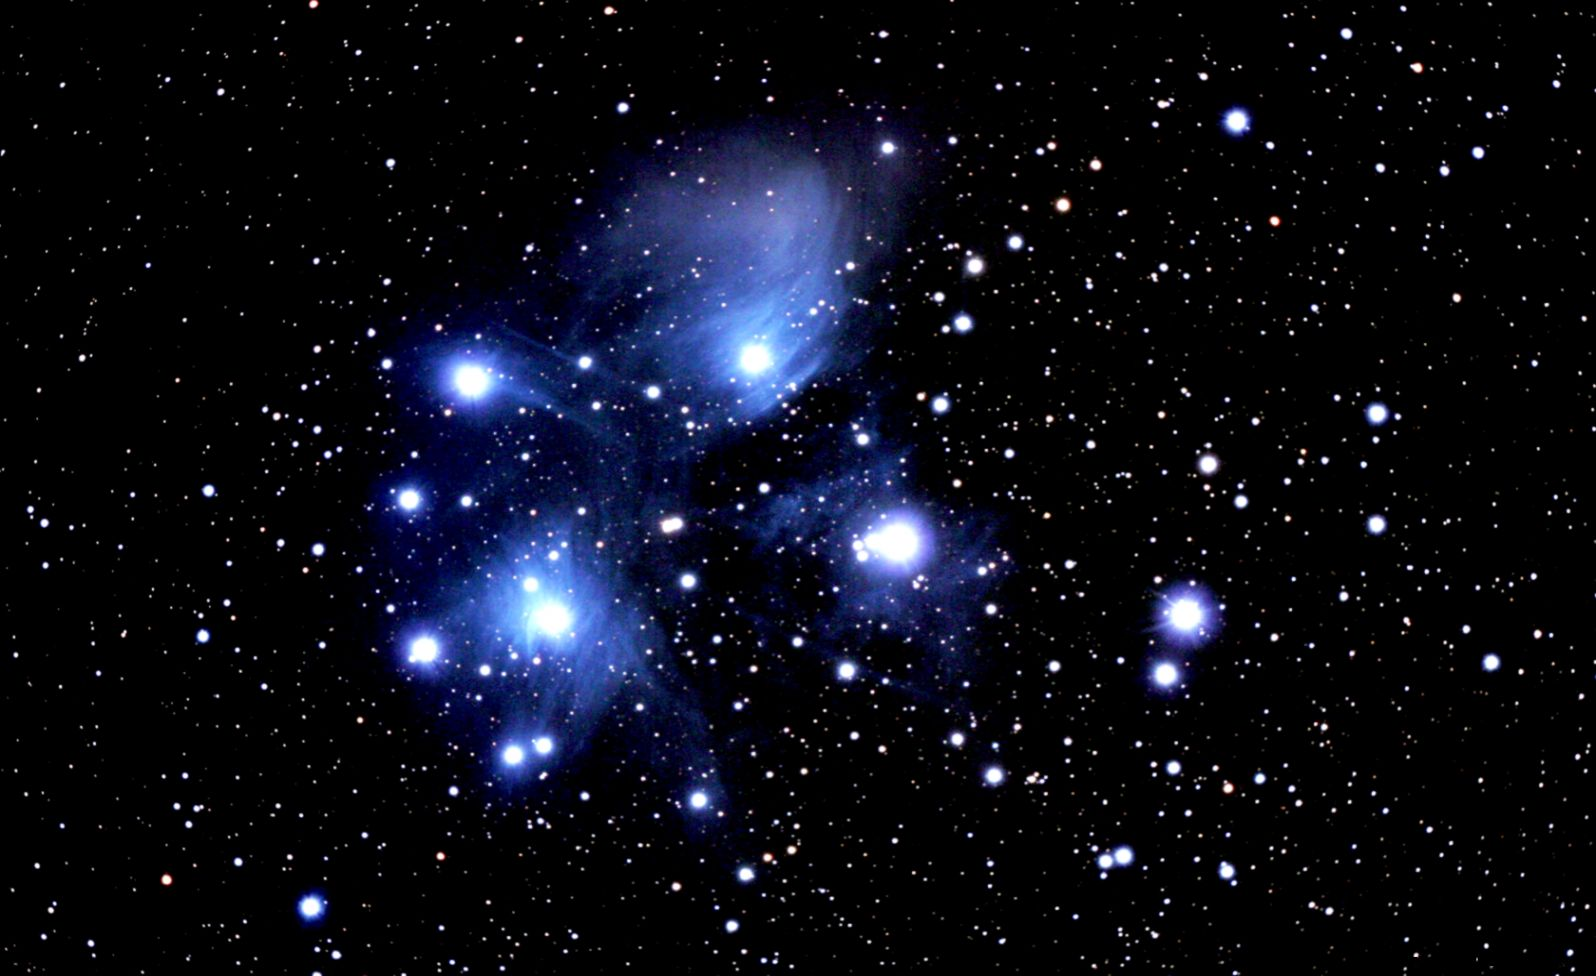 M45 Pleiades Star Cluster large